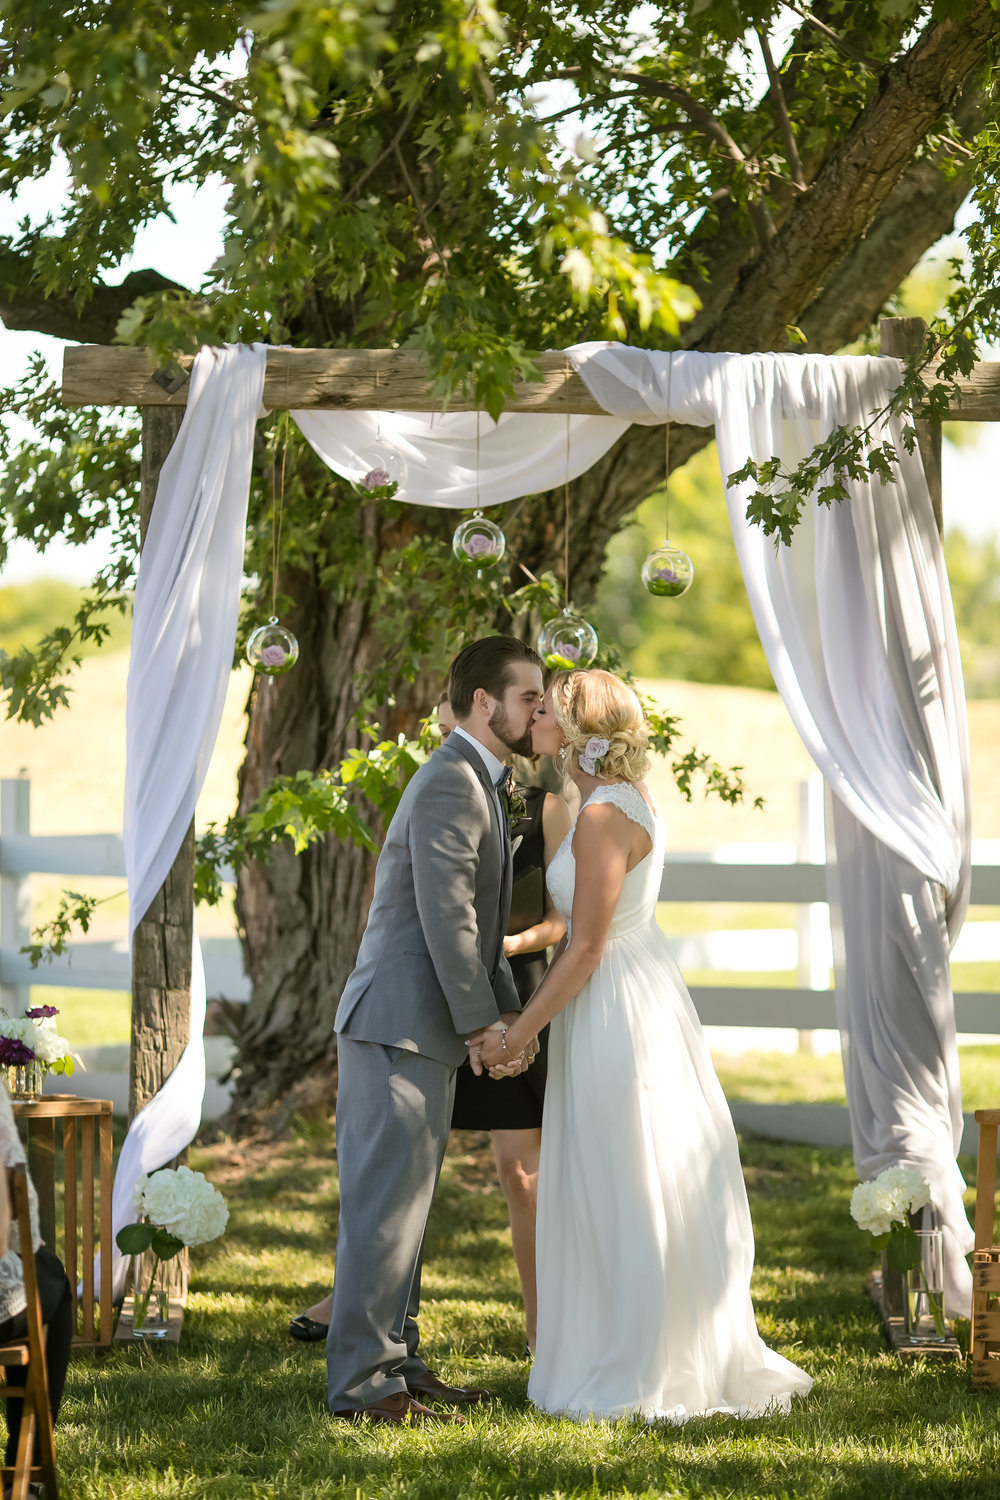 Wedding ceremony arch draping decoration with hanging floral ball vases / arch drapery